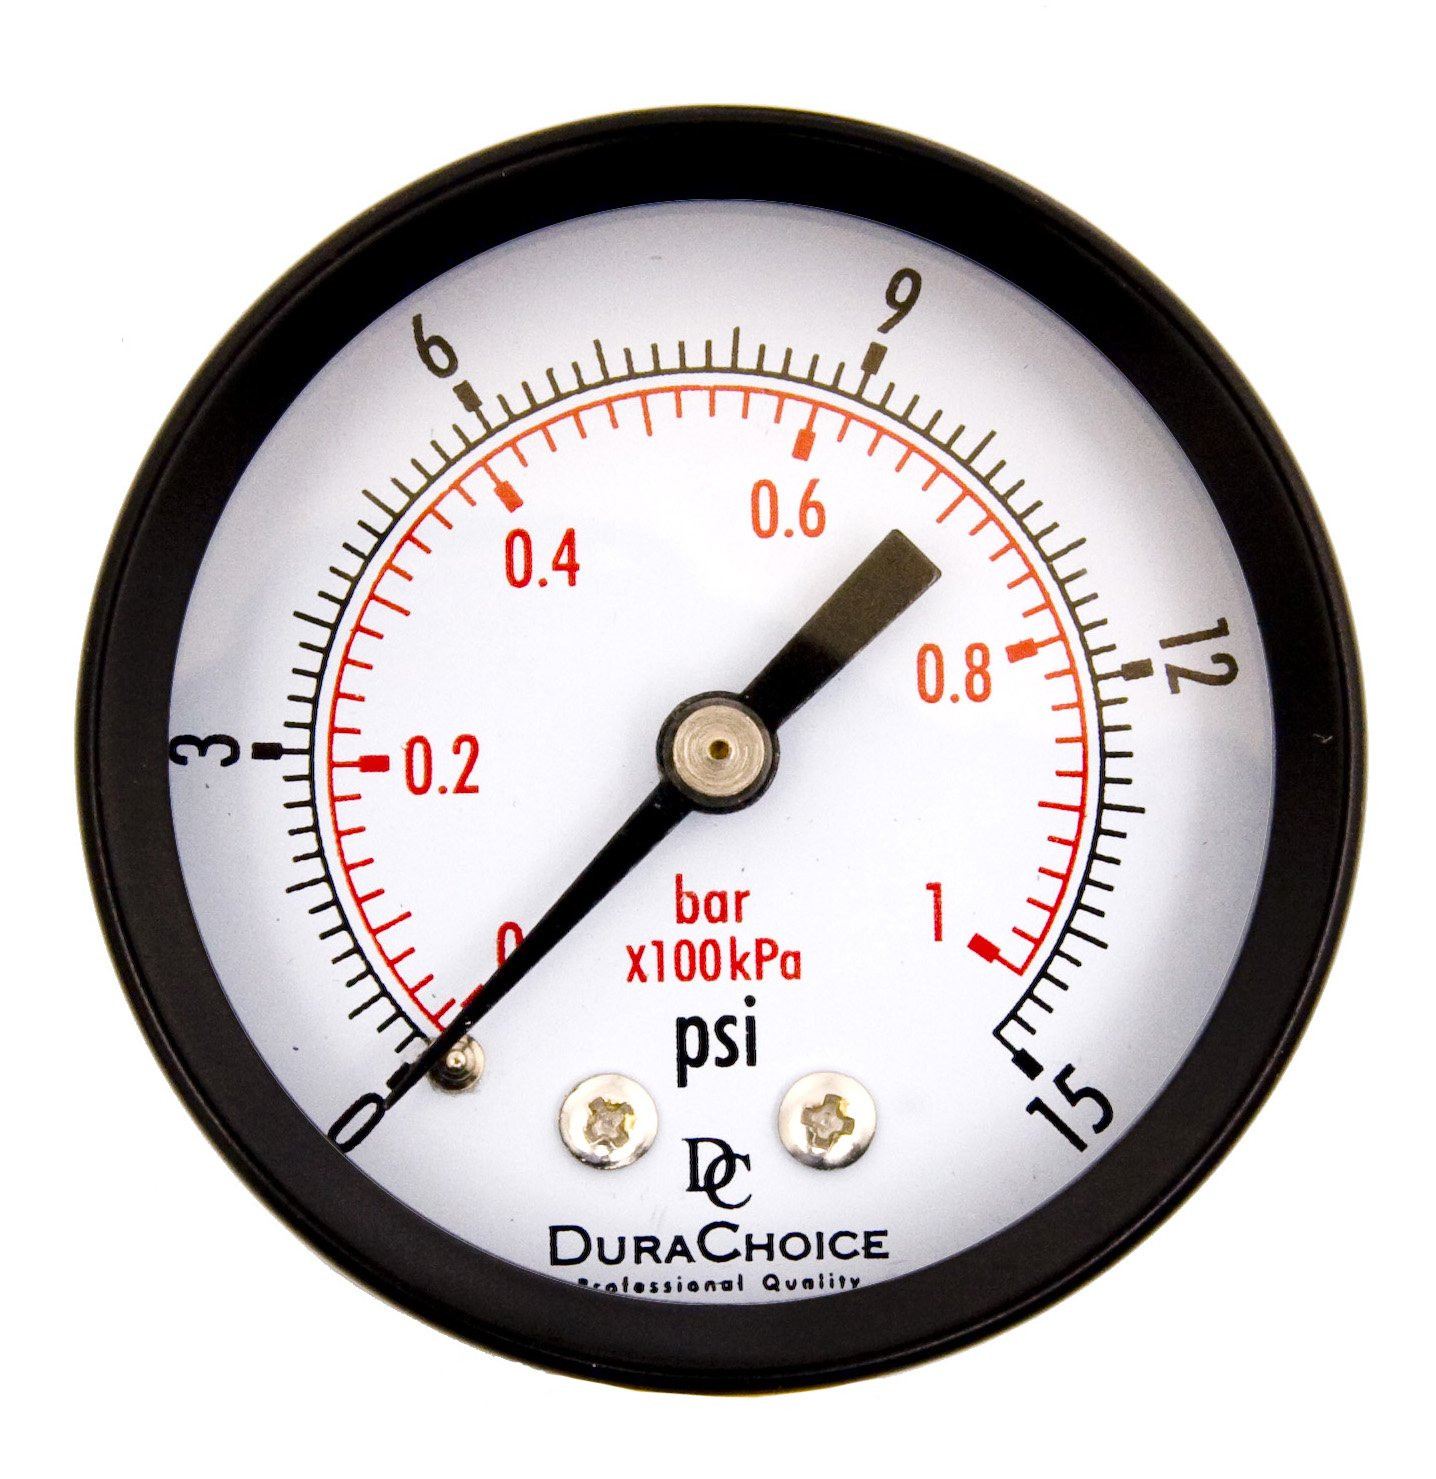 DuraChoice 2 Dial Utility Pressure Gauge for Air Compressor Water Oil Gas 1 4 NPT Center Back Mount Black Steel Case 0 15 PSI